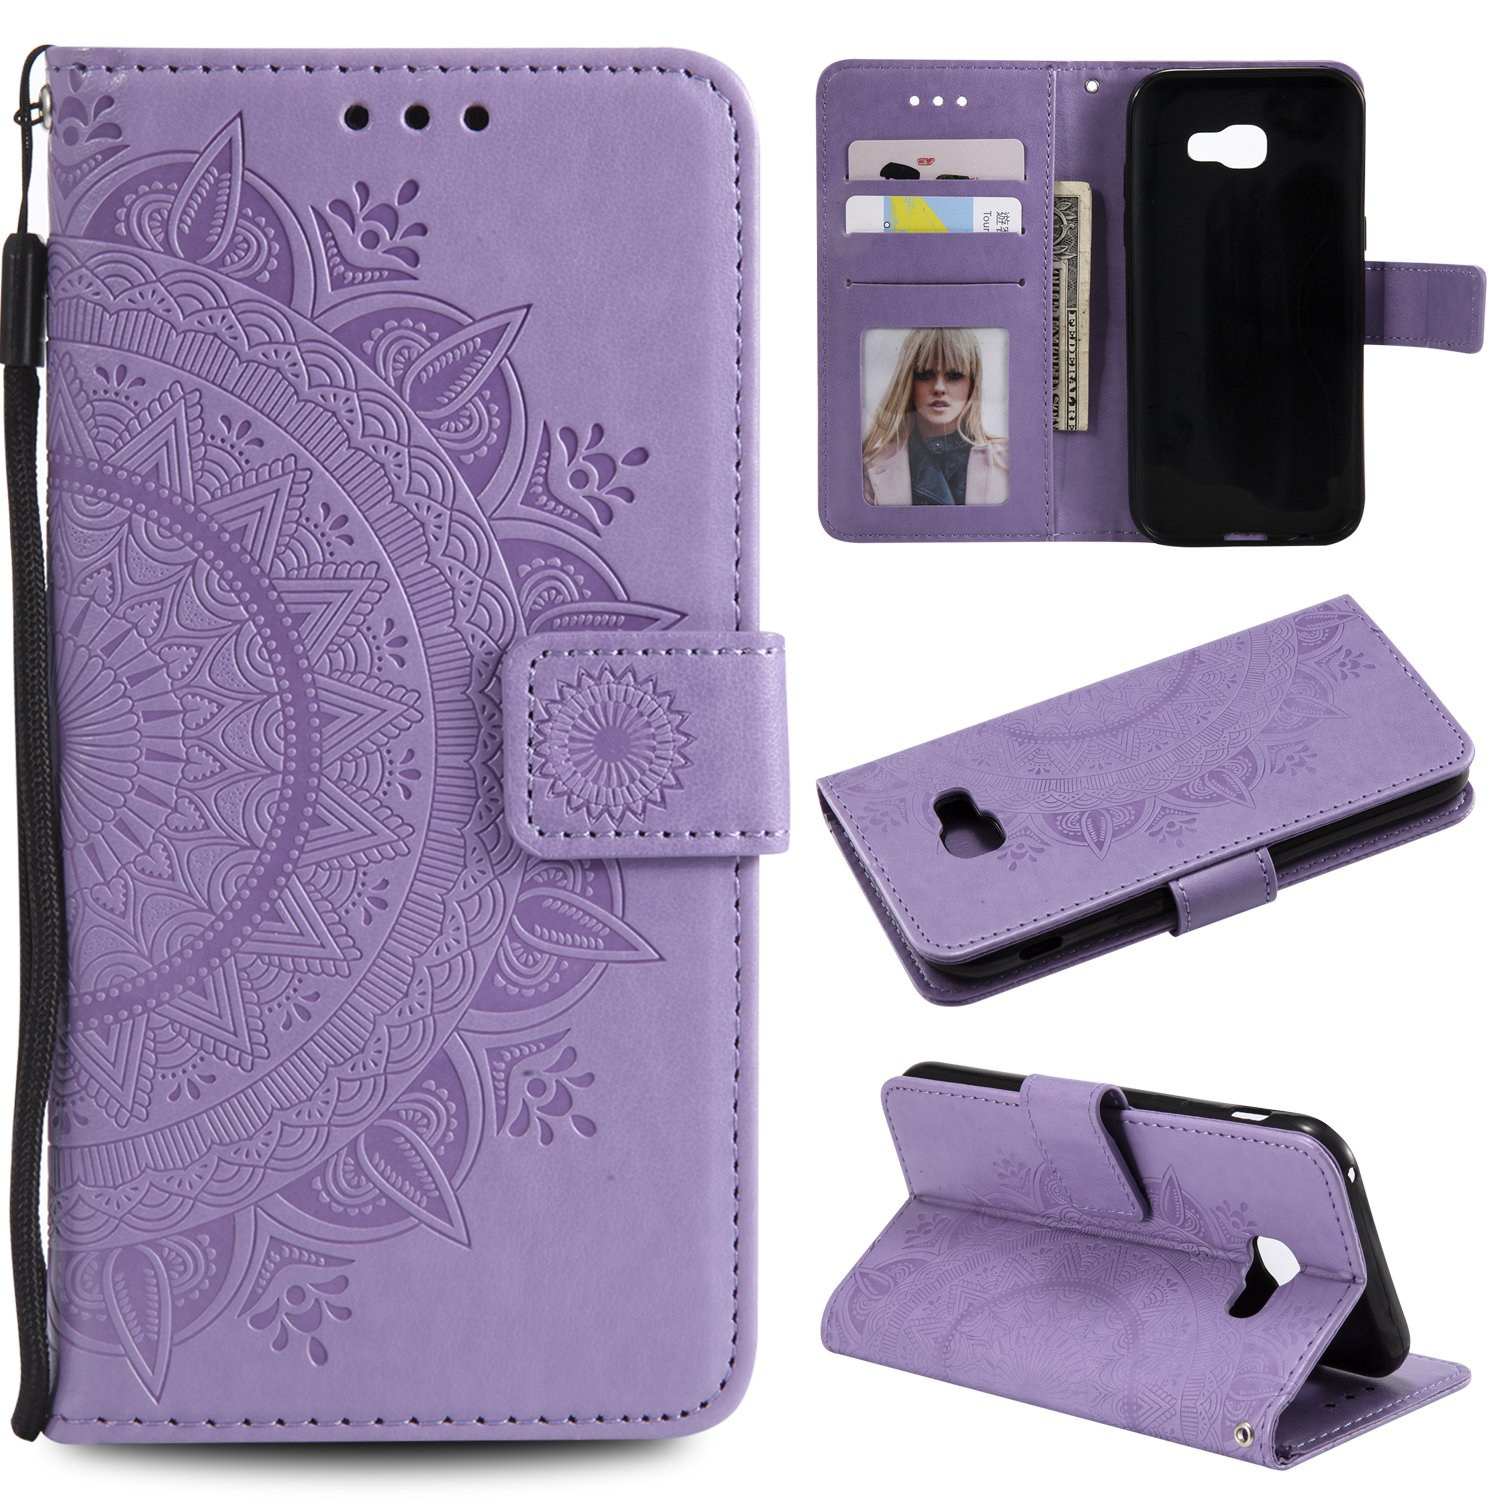 Galaxy A5 2017 Floral Wallet Case,Galaxy A5 2017 Strap Flip Case,Leecase Embossed Totem Flower Design Pu Leather Bookstyle Stand Flip Case for Samsung Galaxy A5 2017-Purple